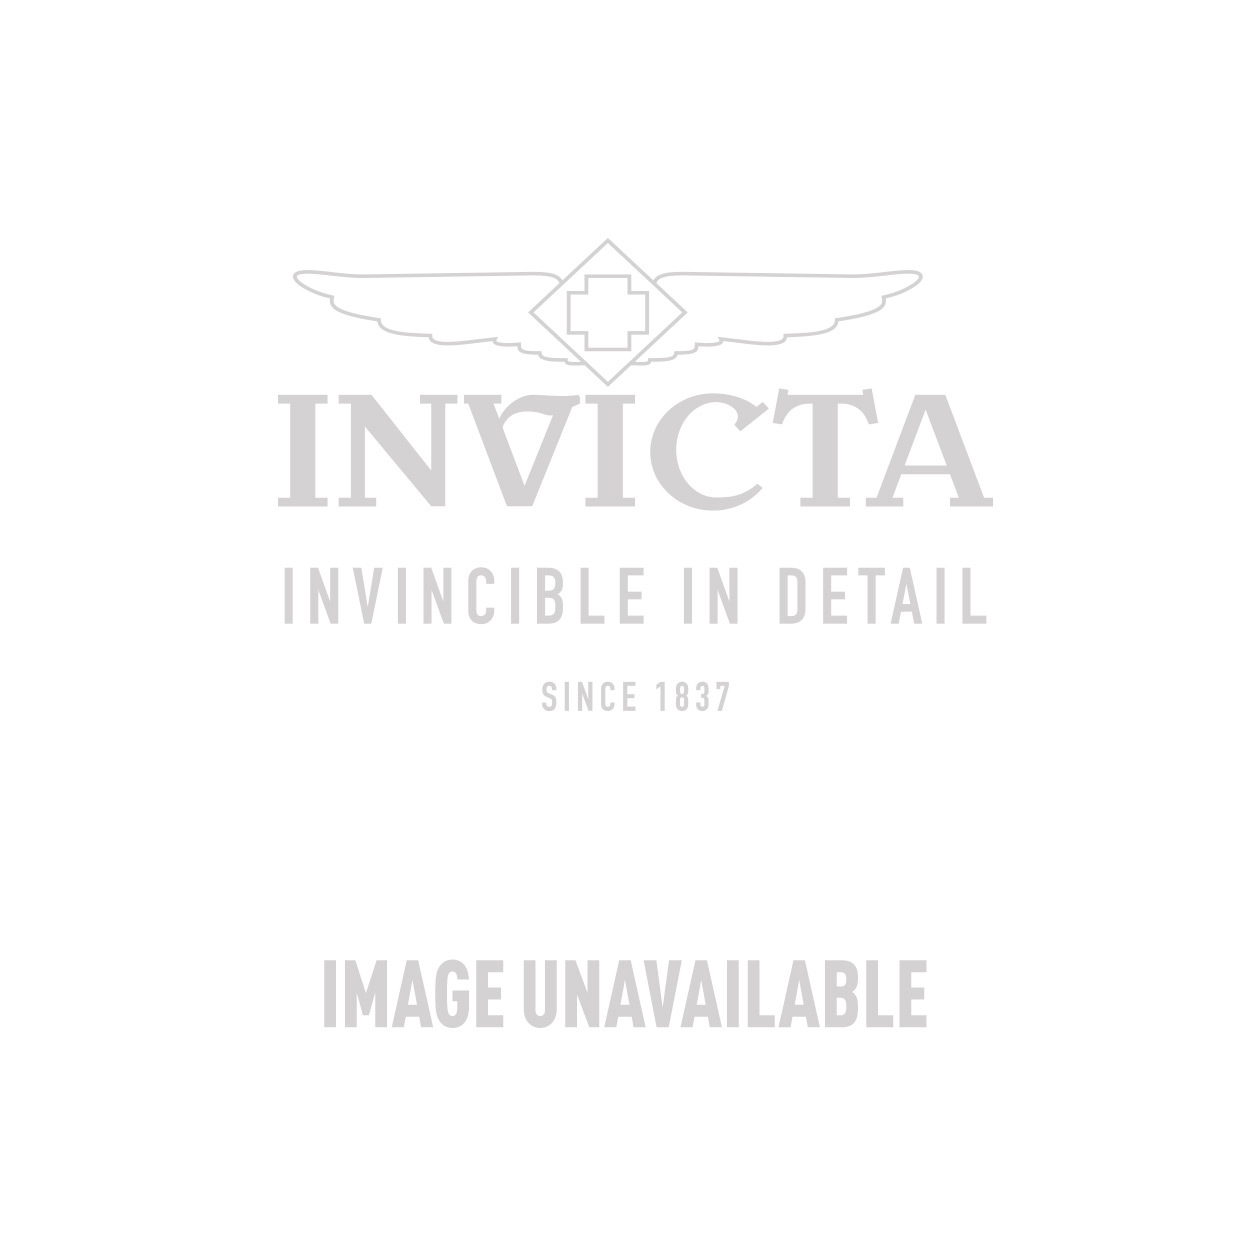 Invicta I-Force Quartz Watch - Rose Gold, Stainless Steel case with Black tone Silicone band - Model 16906